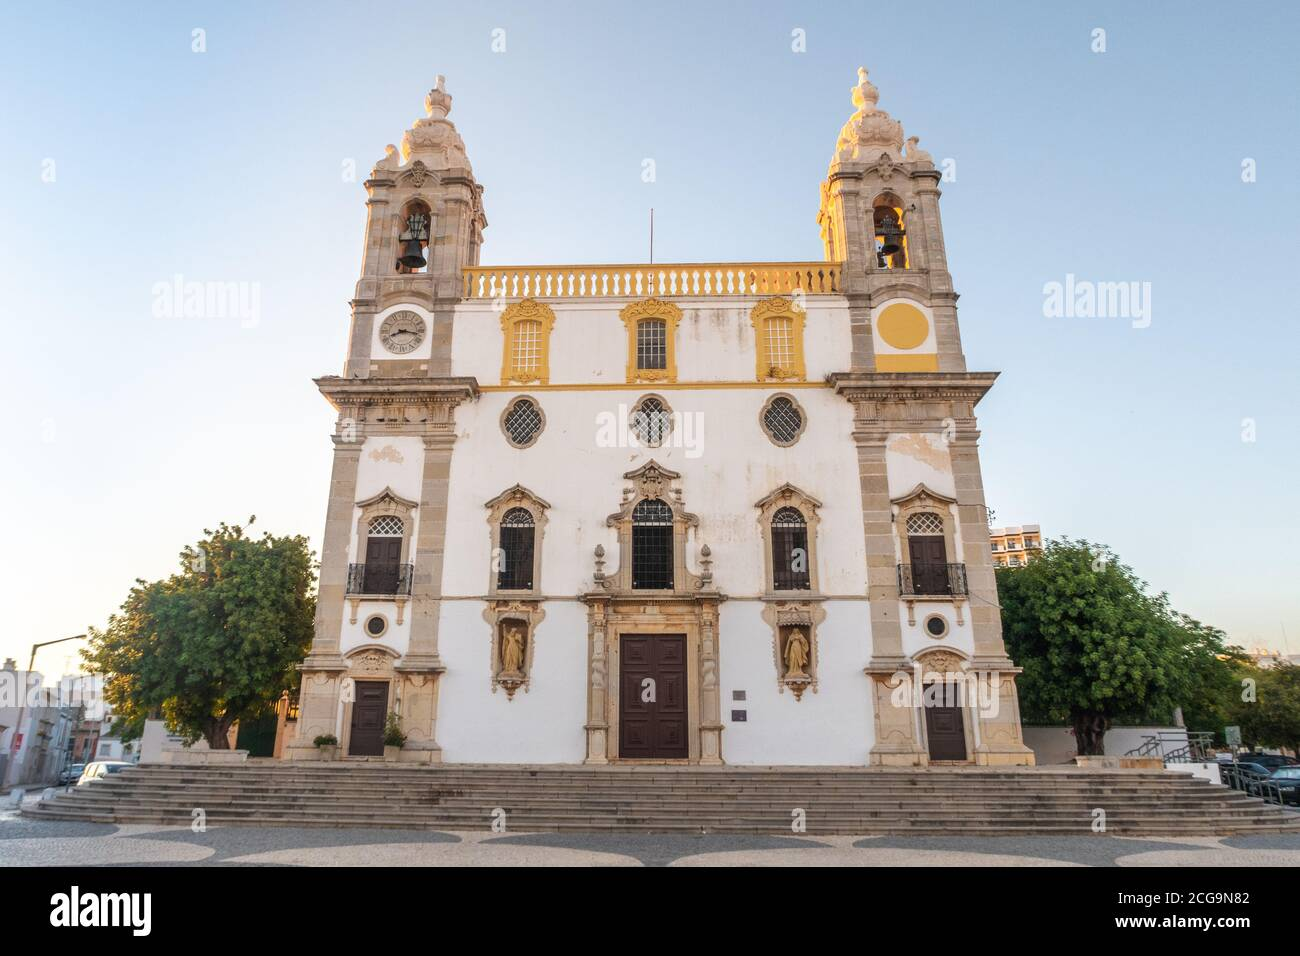 Carmo Church, the Chapel of Bones in Faro, South Portugal during the golden hour Stock Photo